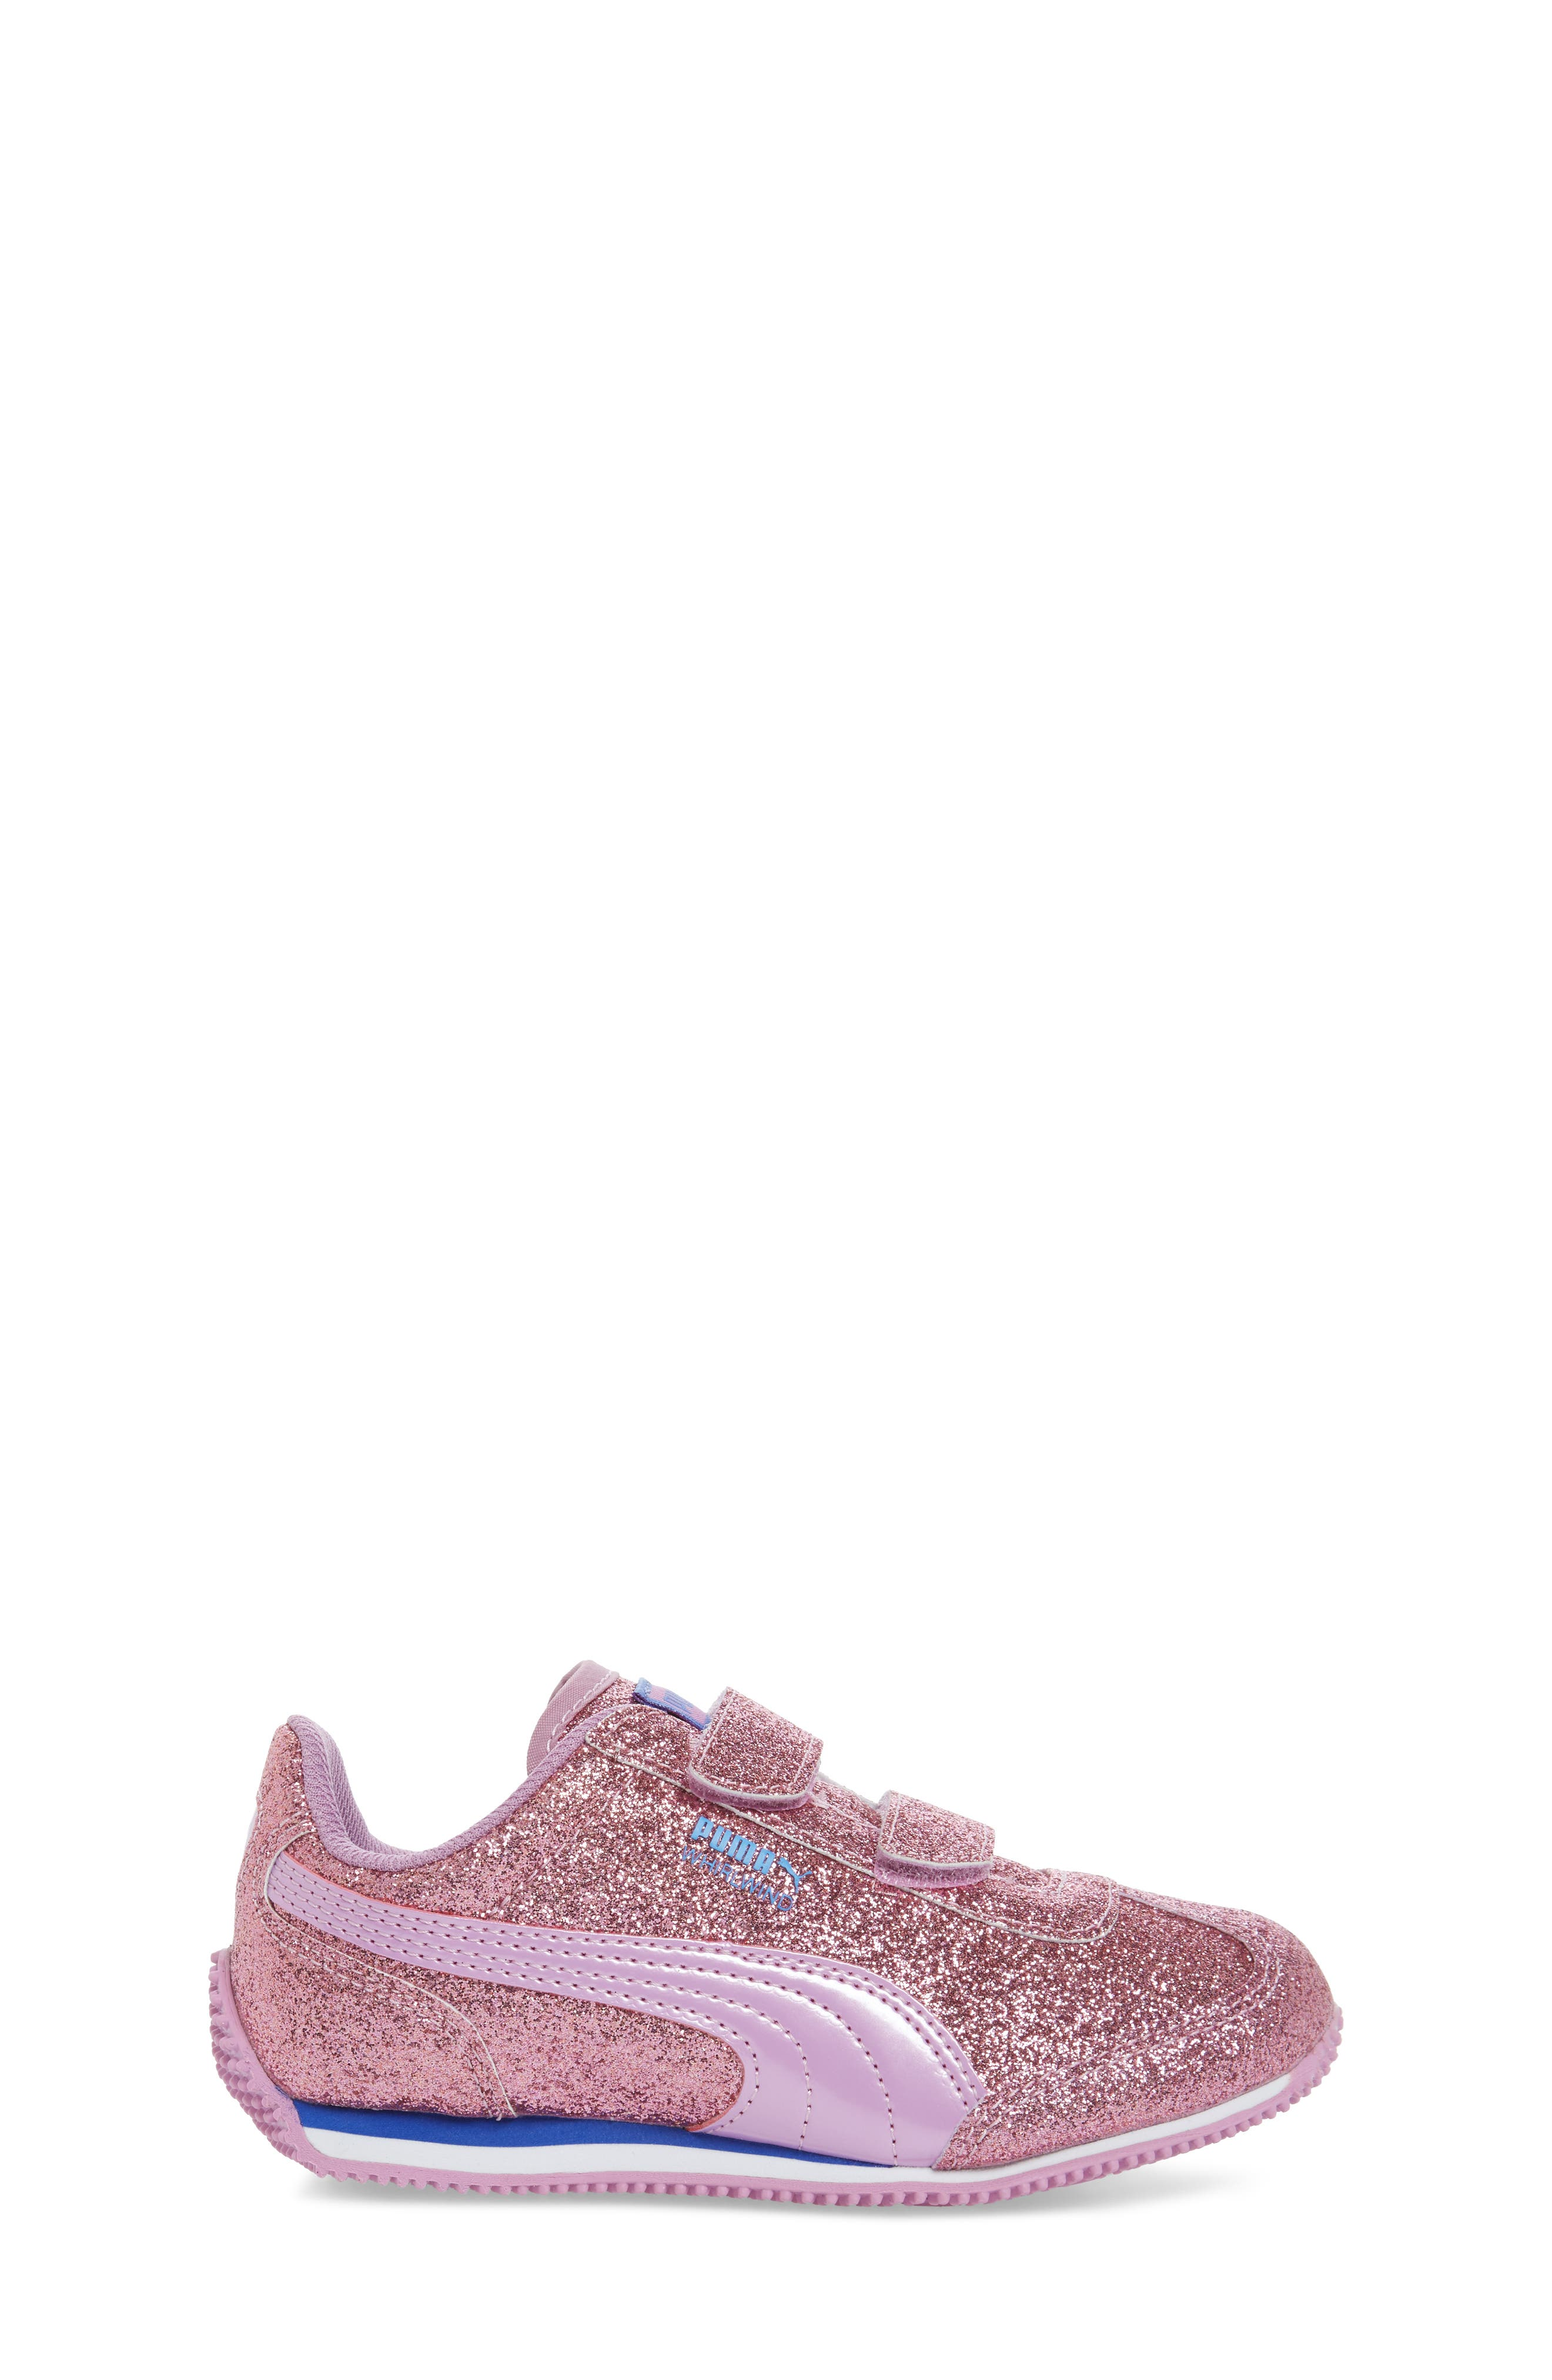 Whirlwind Glitz Sneaker,                             Alternate thumbnail 3, color,                             Purple